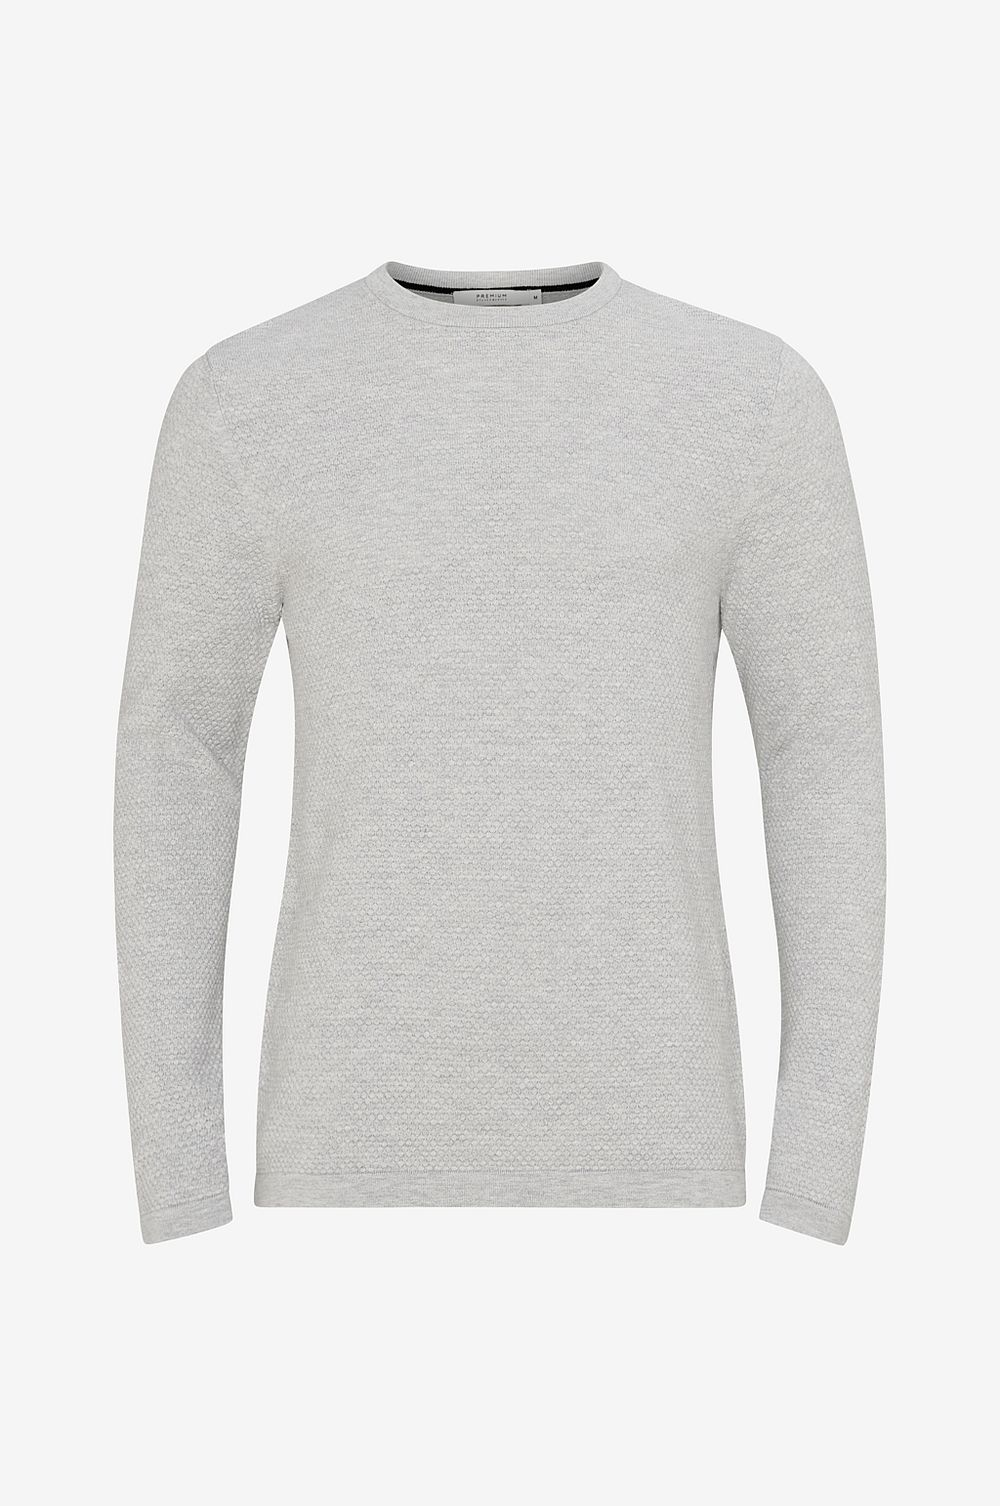 Jack & Jones Tröja jprChamp Knit Crew Neck - Grå - Herr